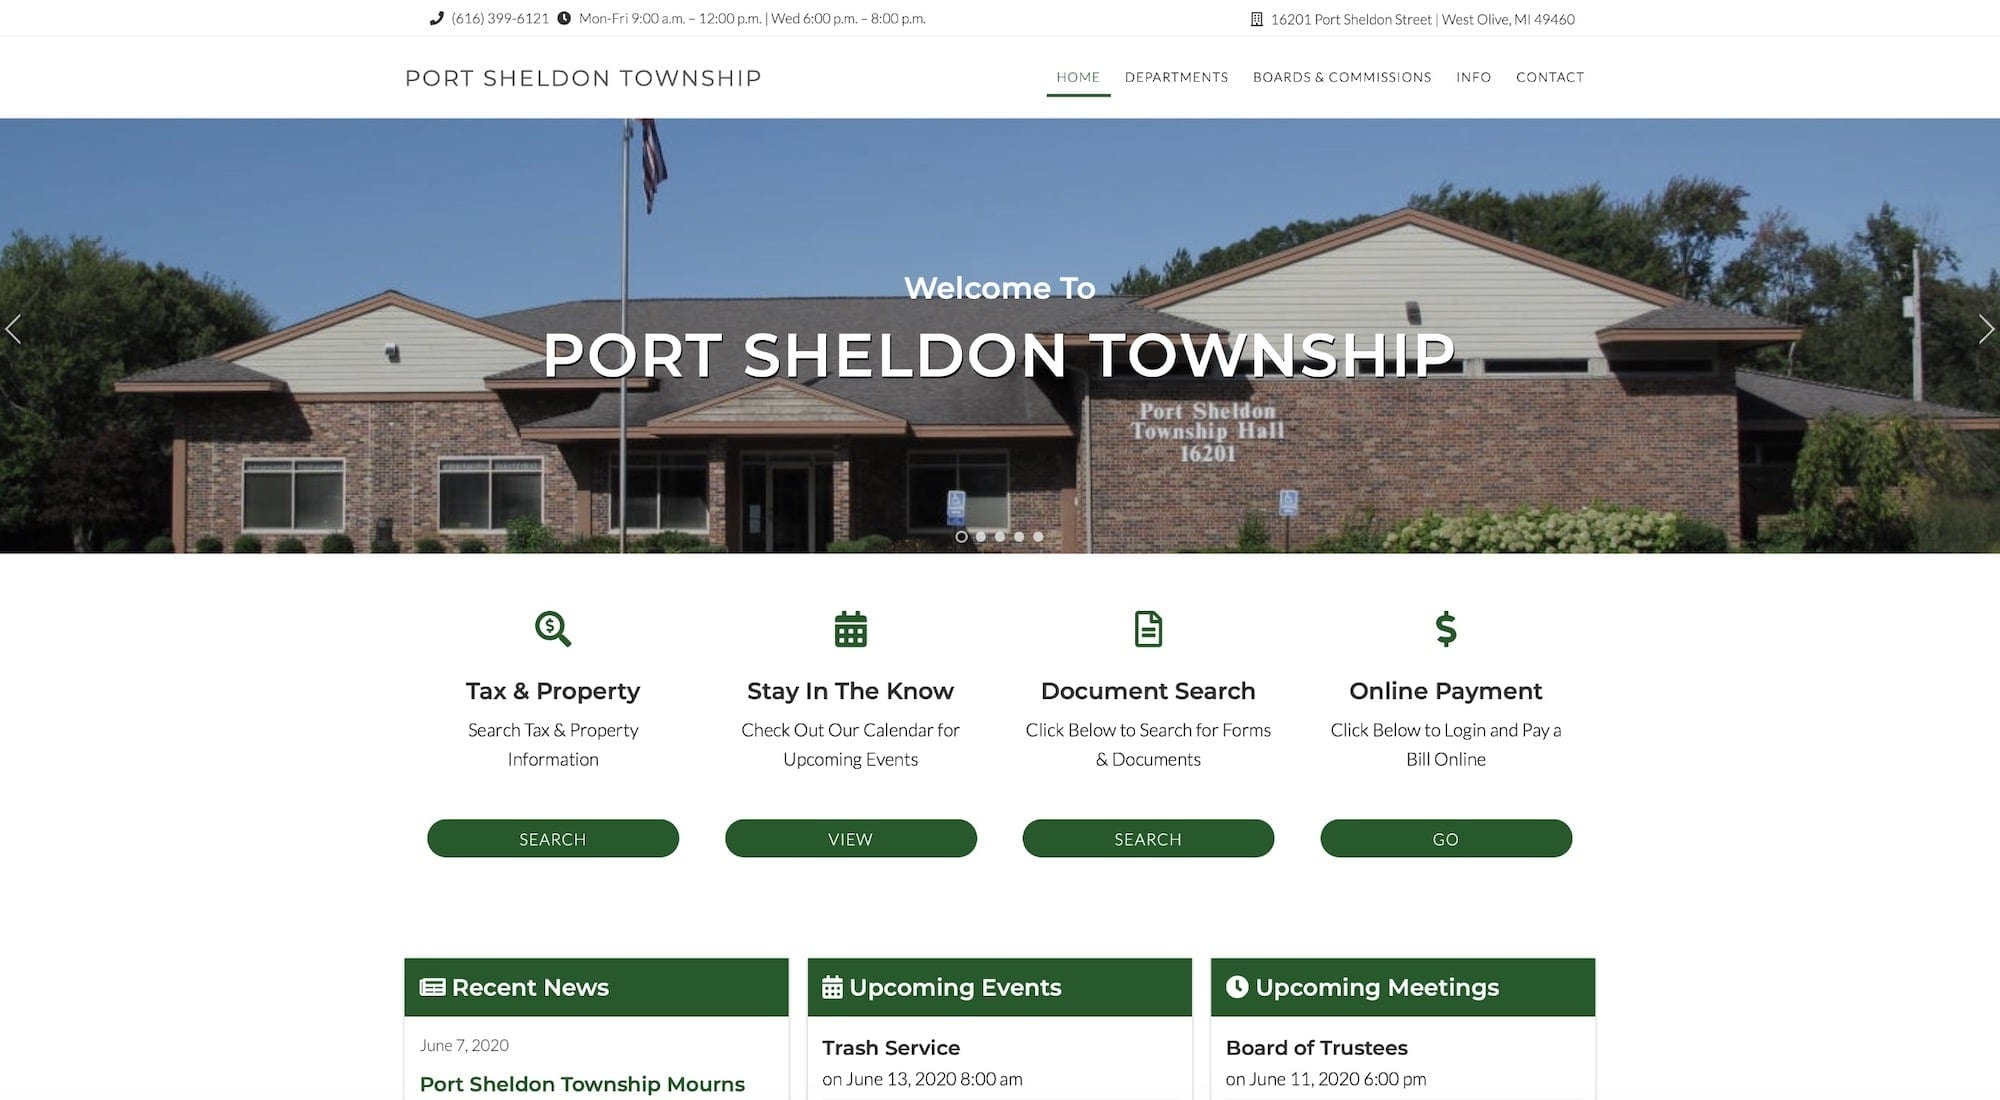 Port Sheldon Township Michigan